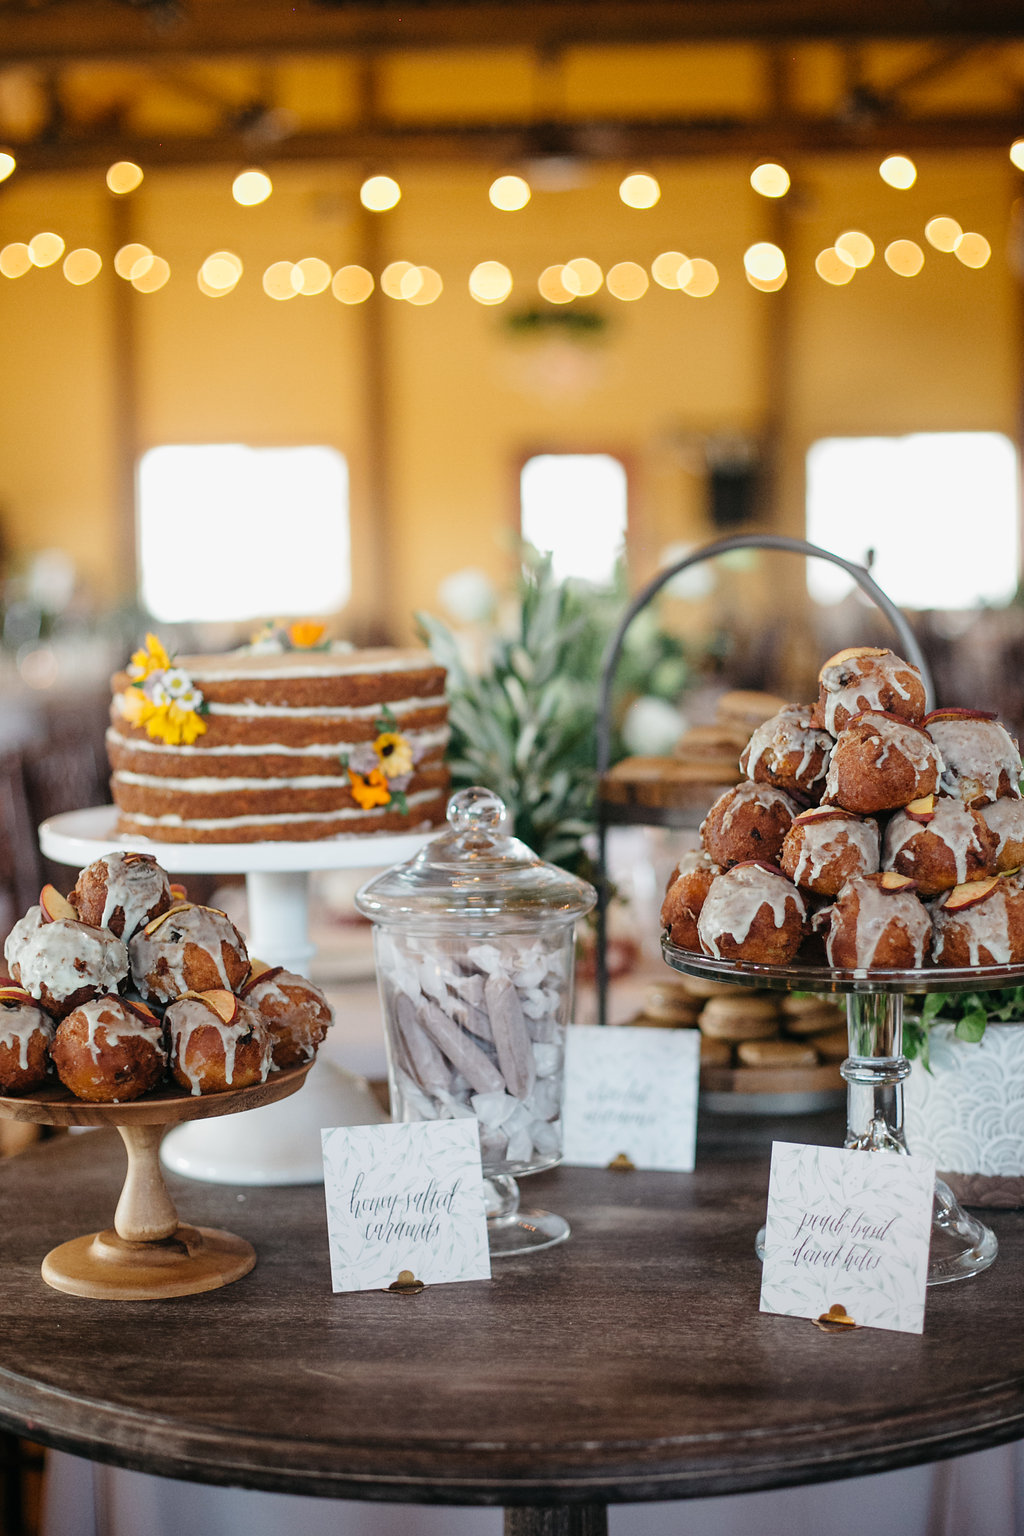 Iowa Midwest Winery Wedding Dessert Display